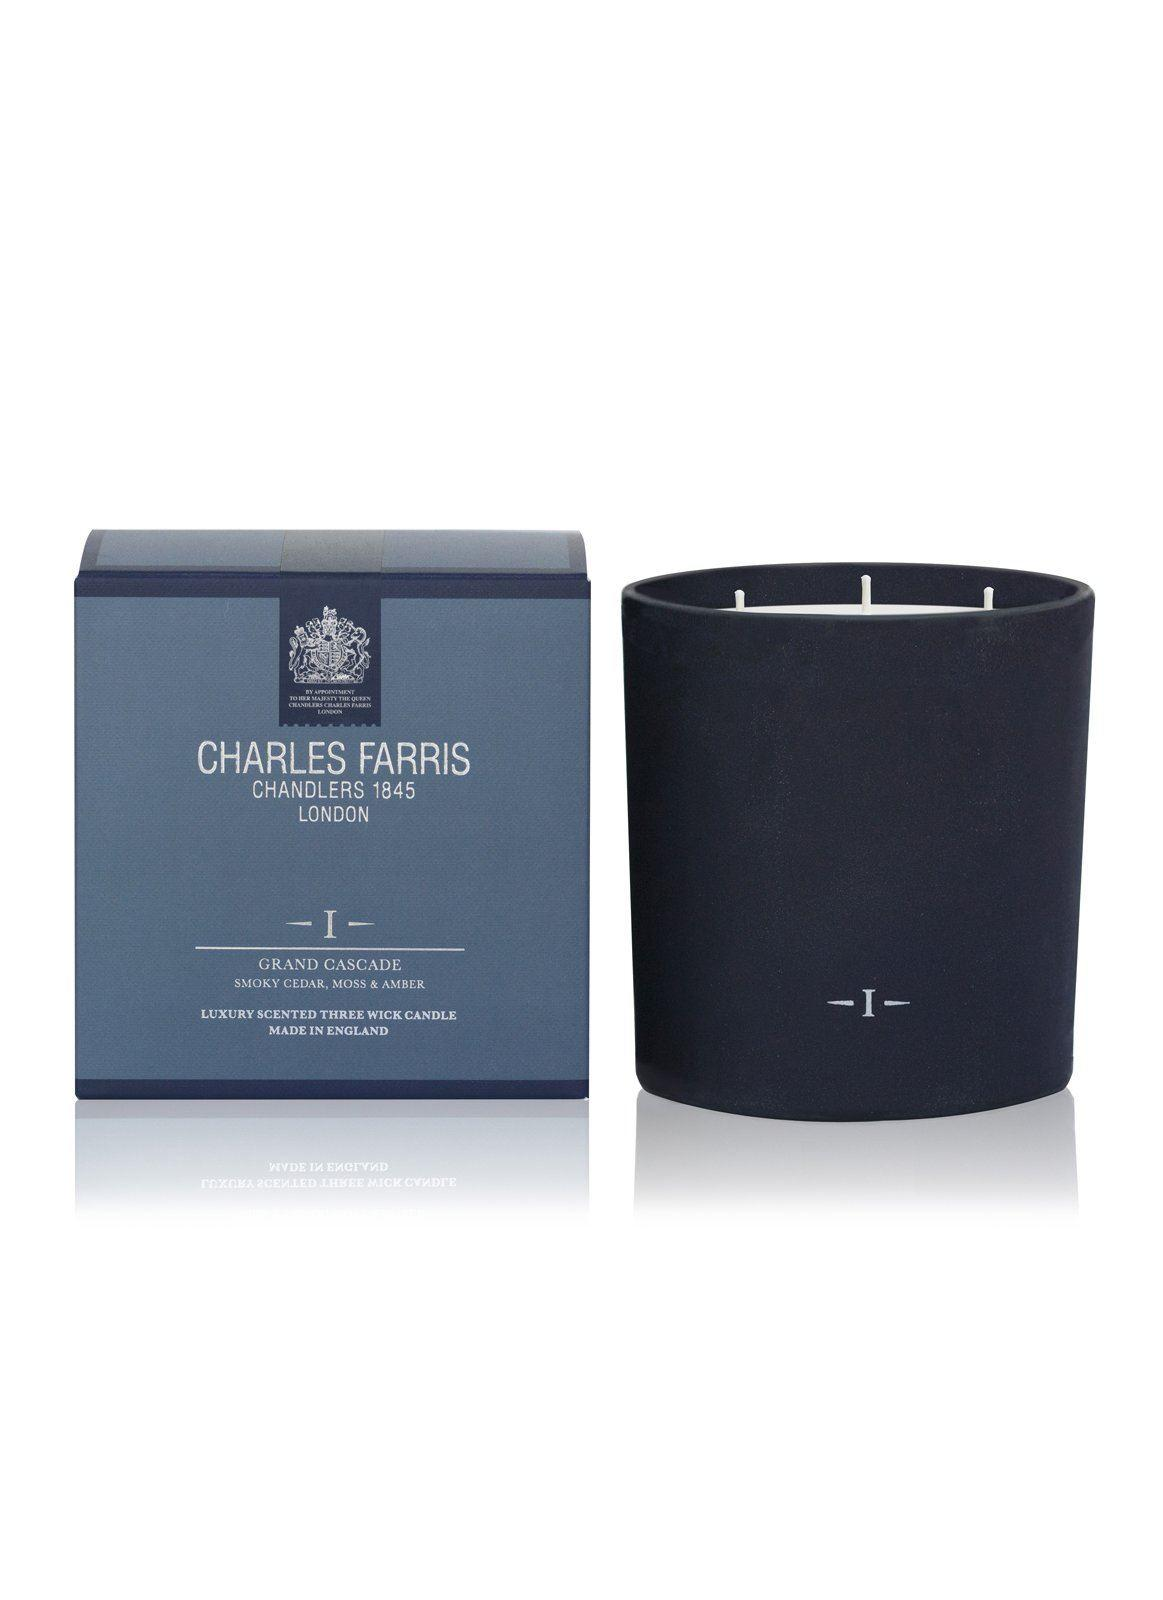 Charles Farris Grand Cascade 3 Wick Candle